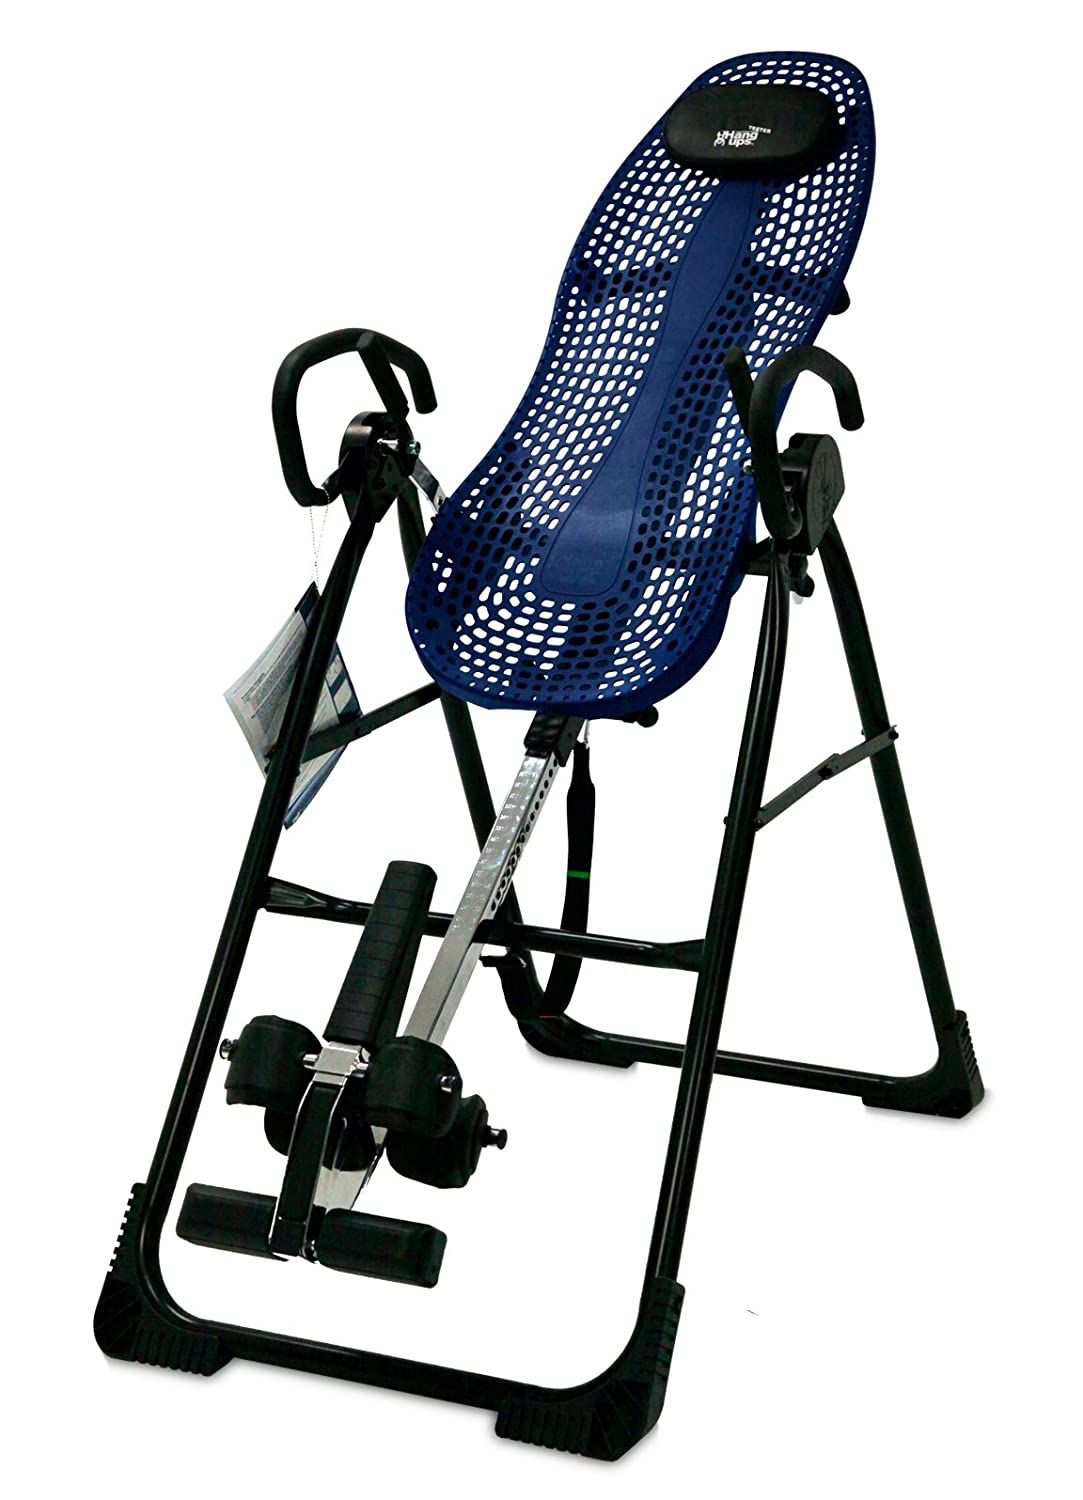 Image result for Inversion table reviews